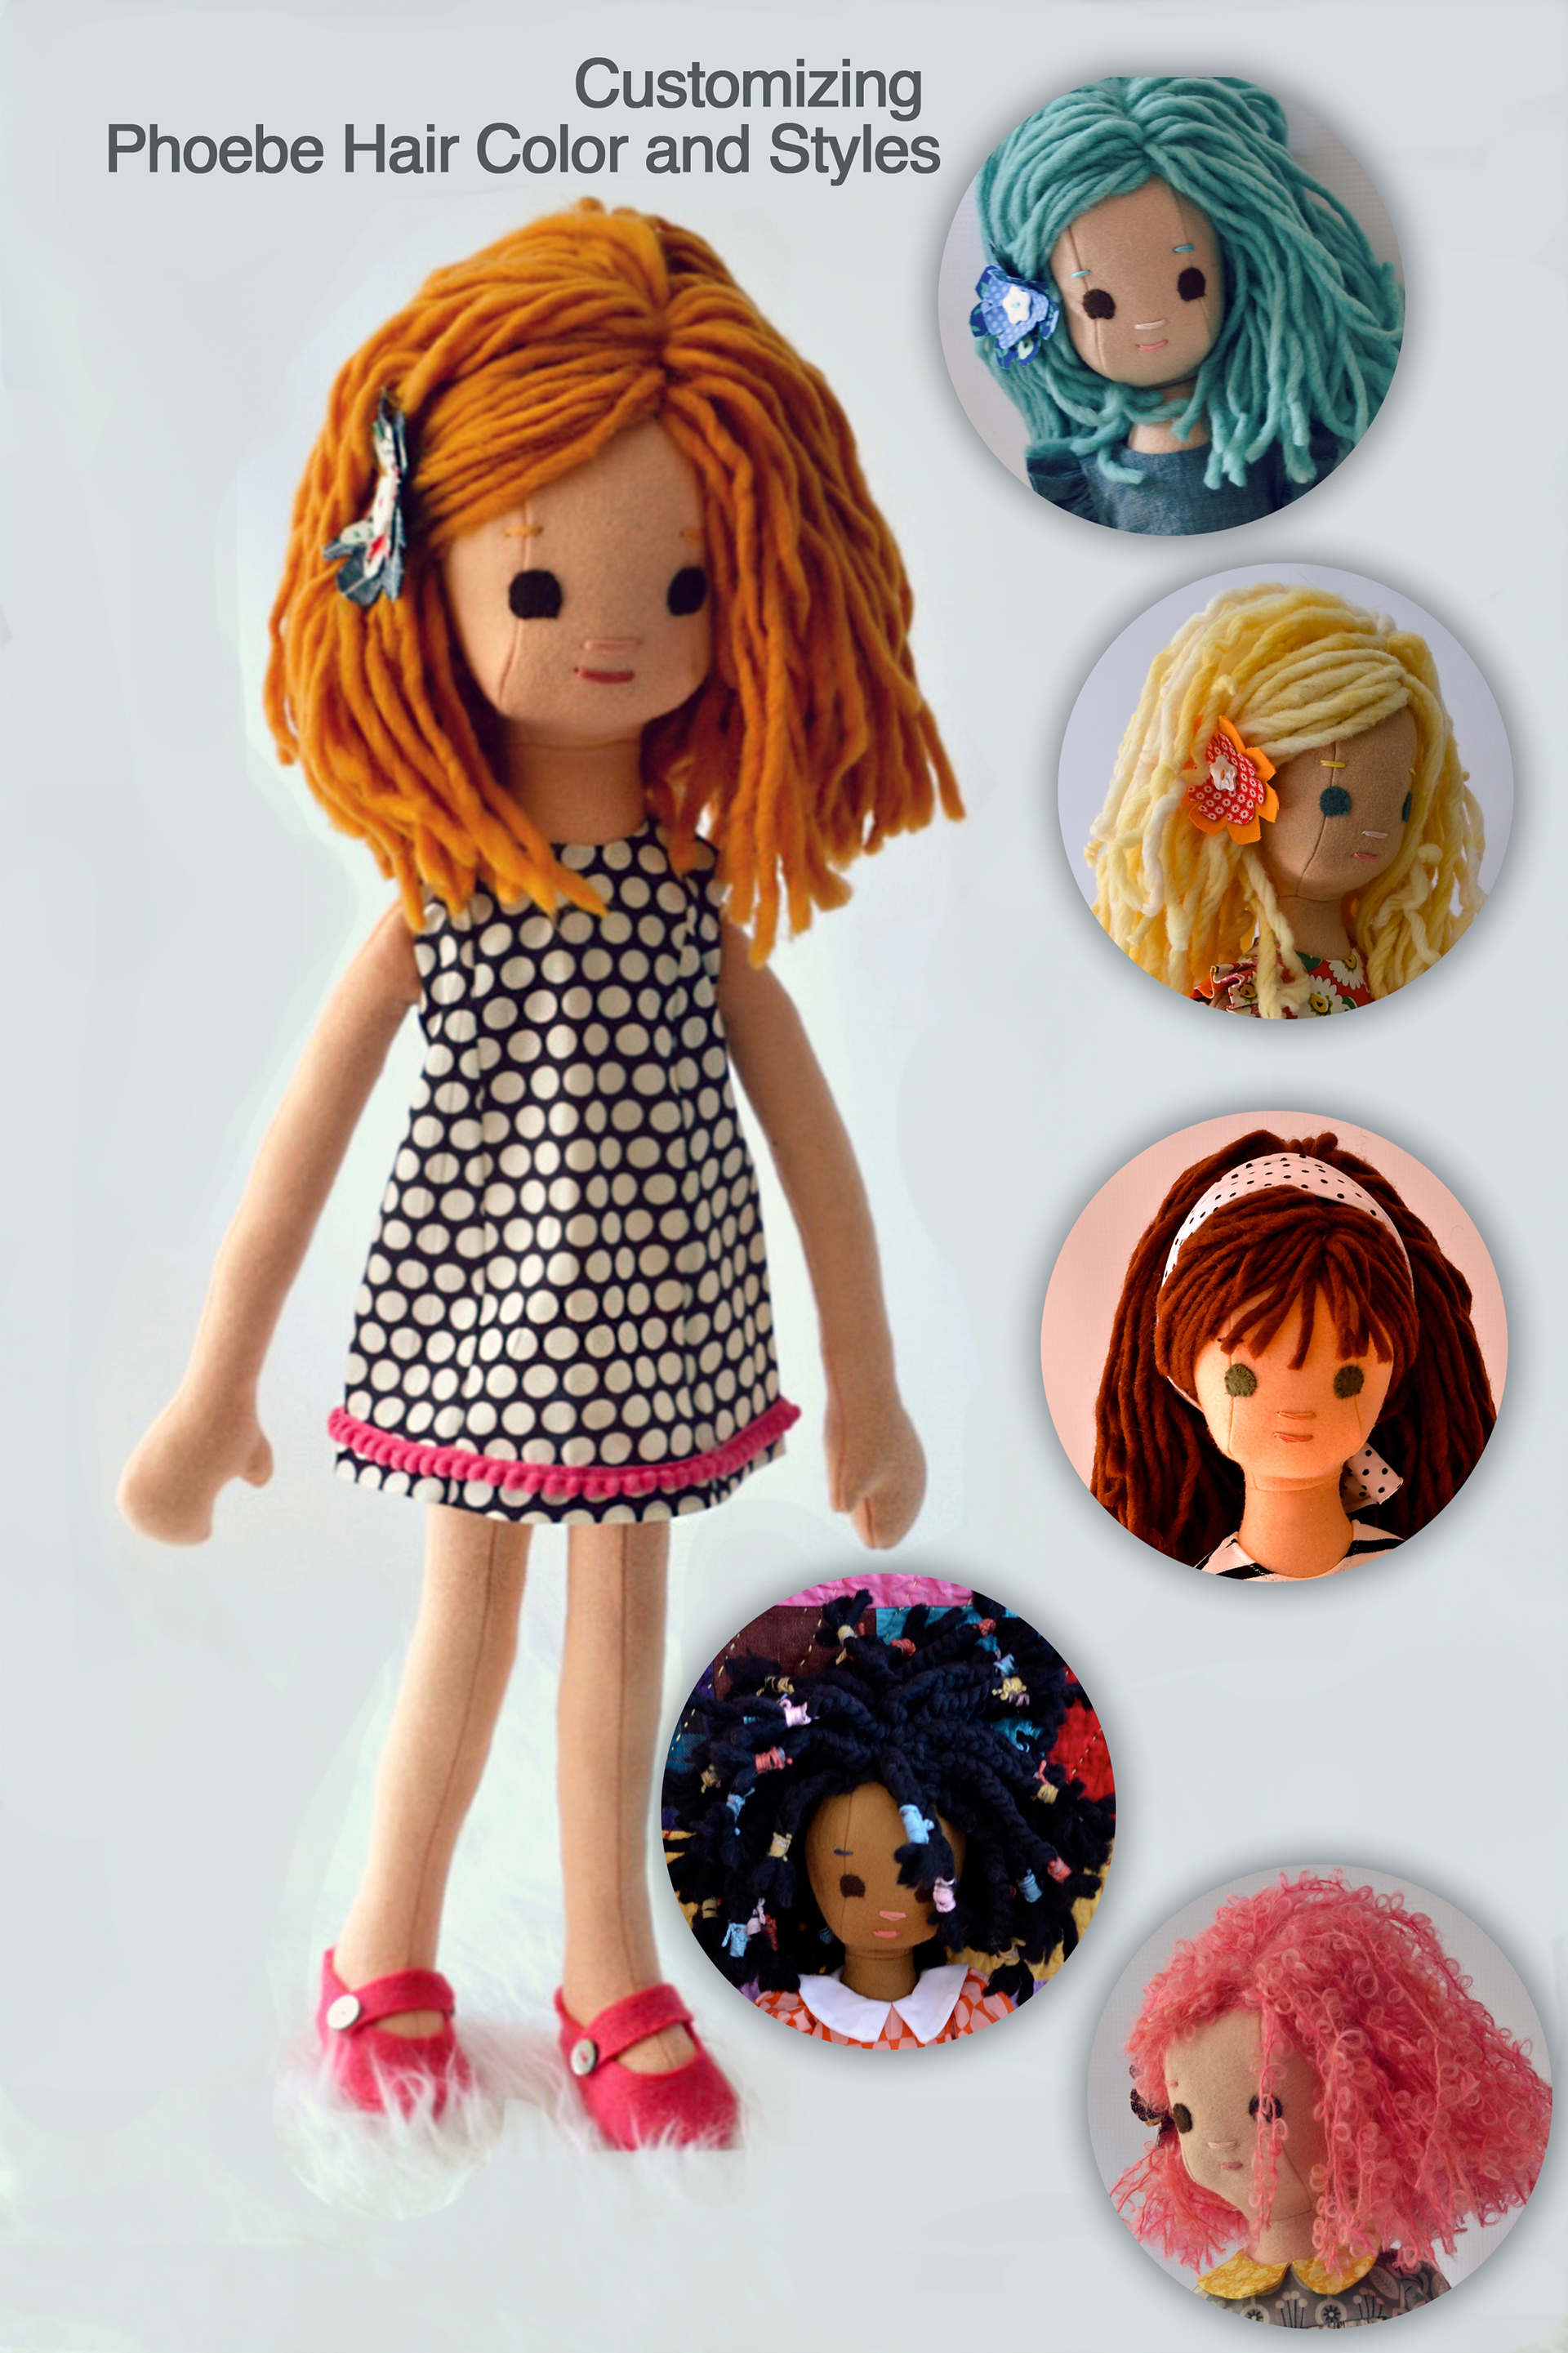 There are many ways to customize a Phoebe Doll